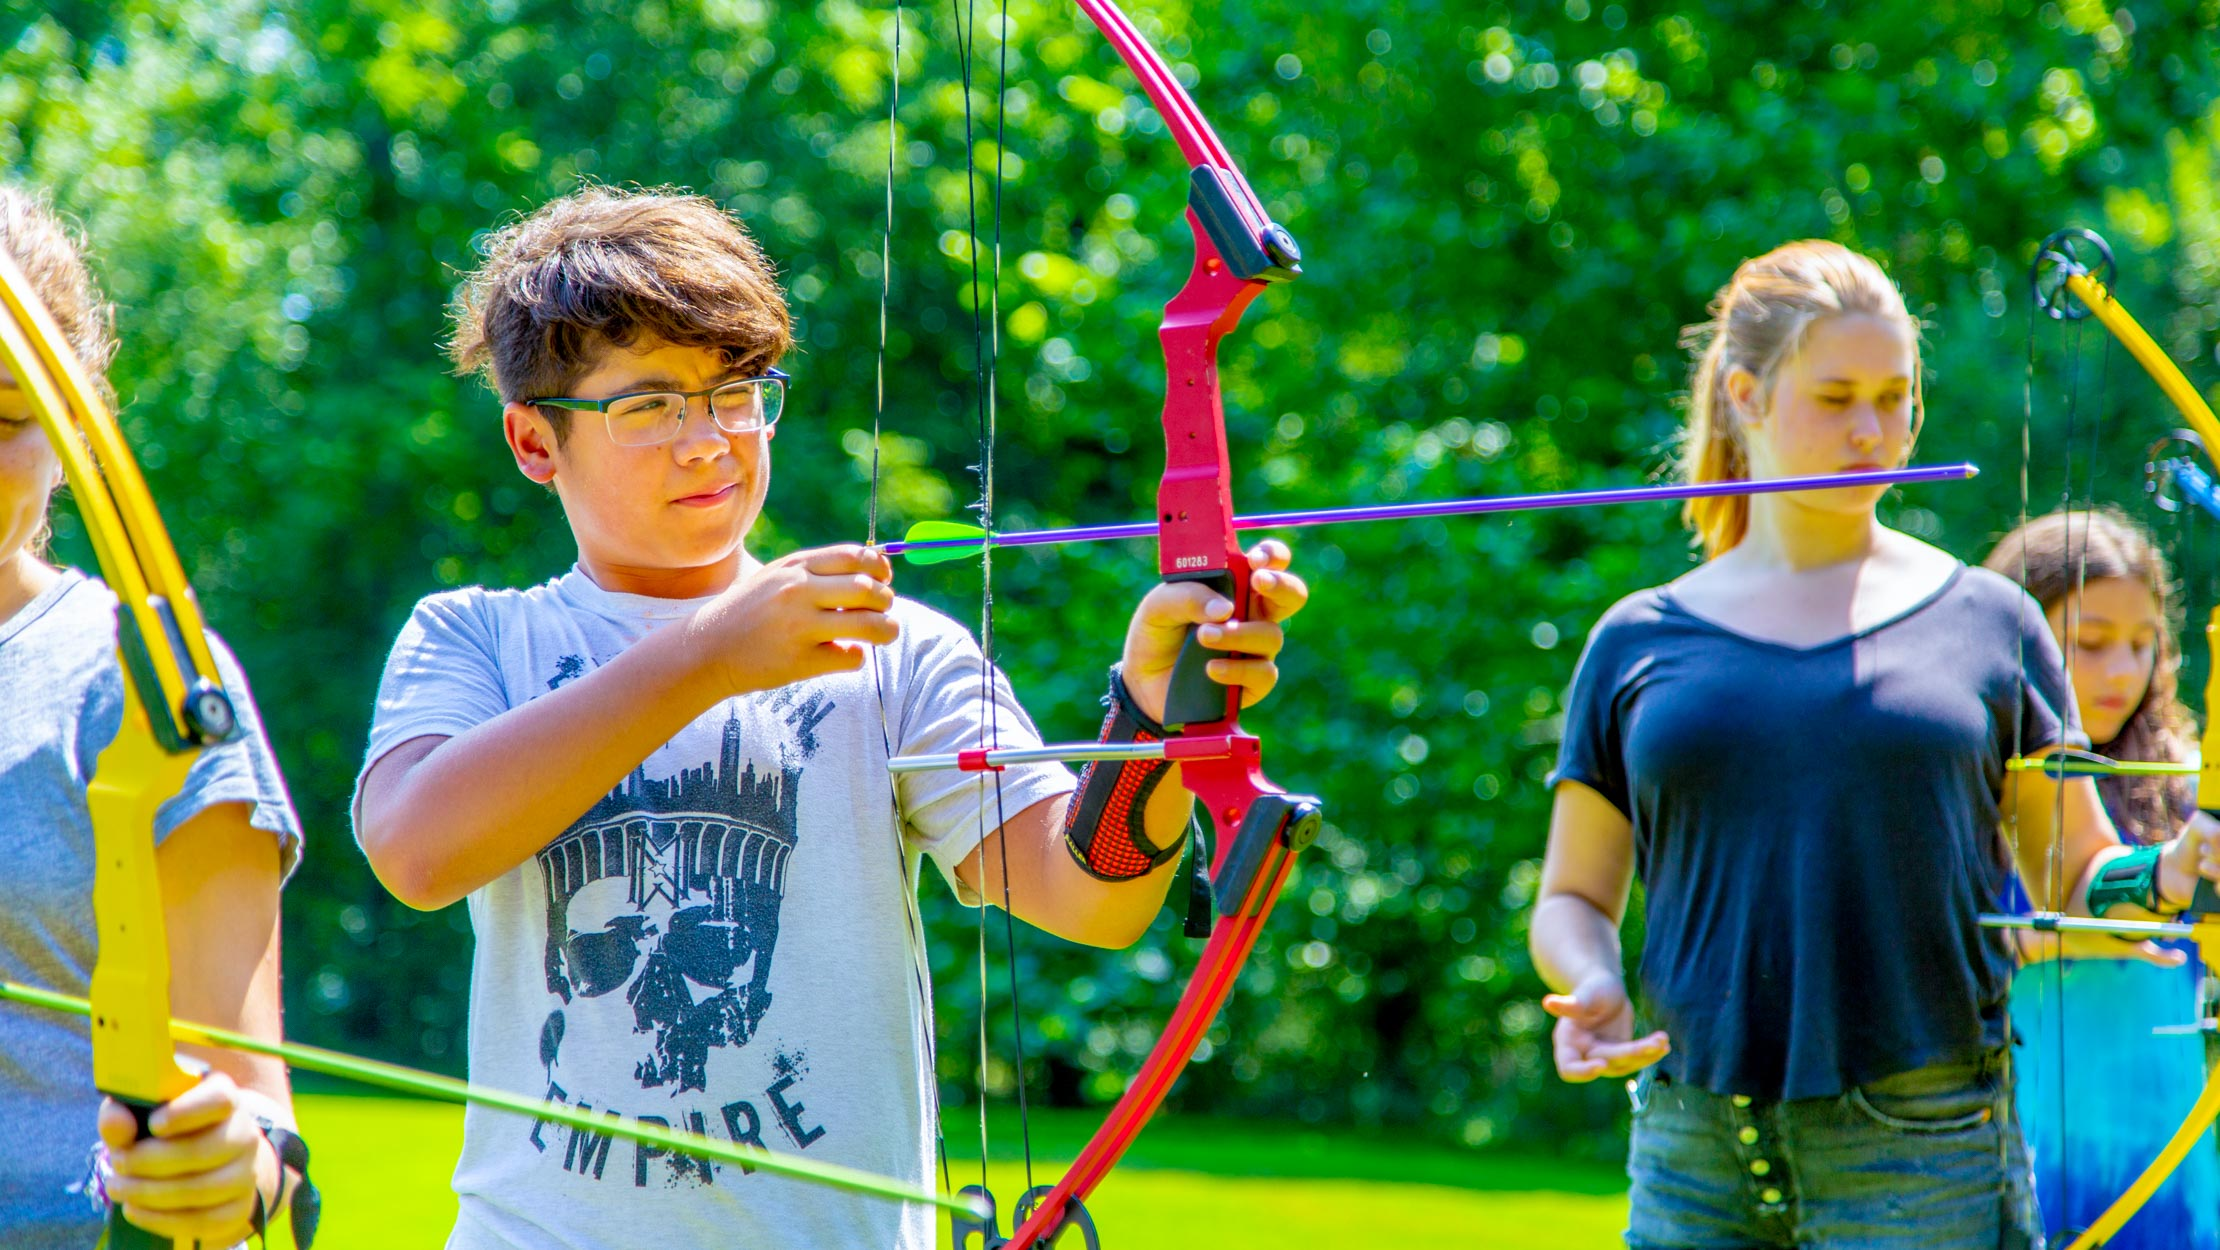 Campers learning archery